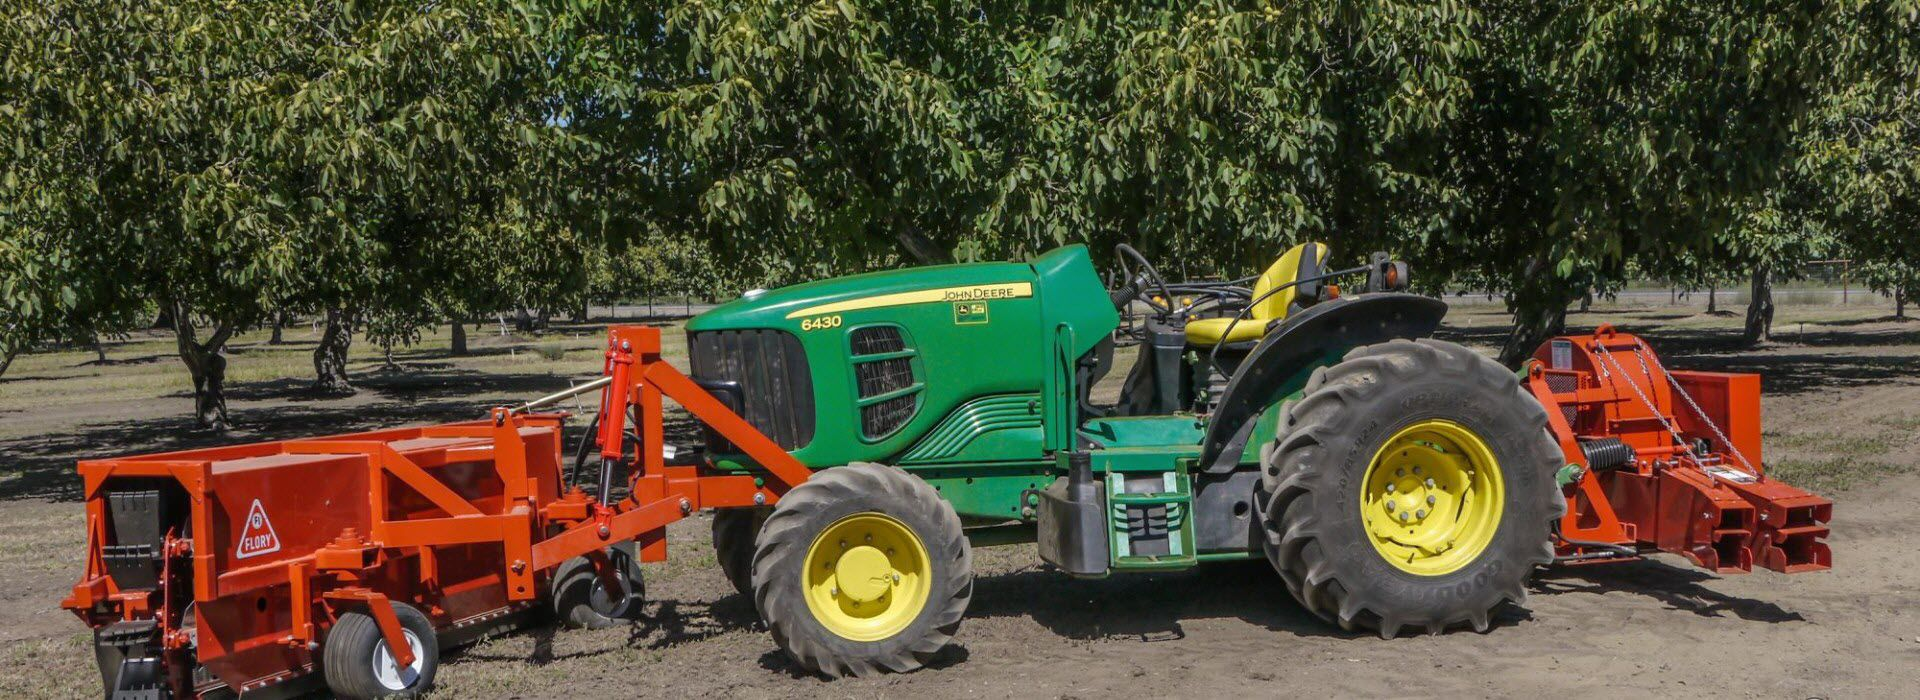 Tractor-mounted sweeper / arboriculture / aligning - 9685/9610